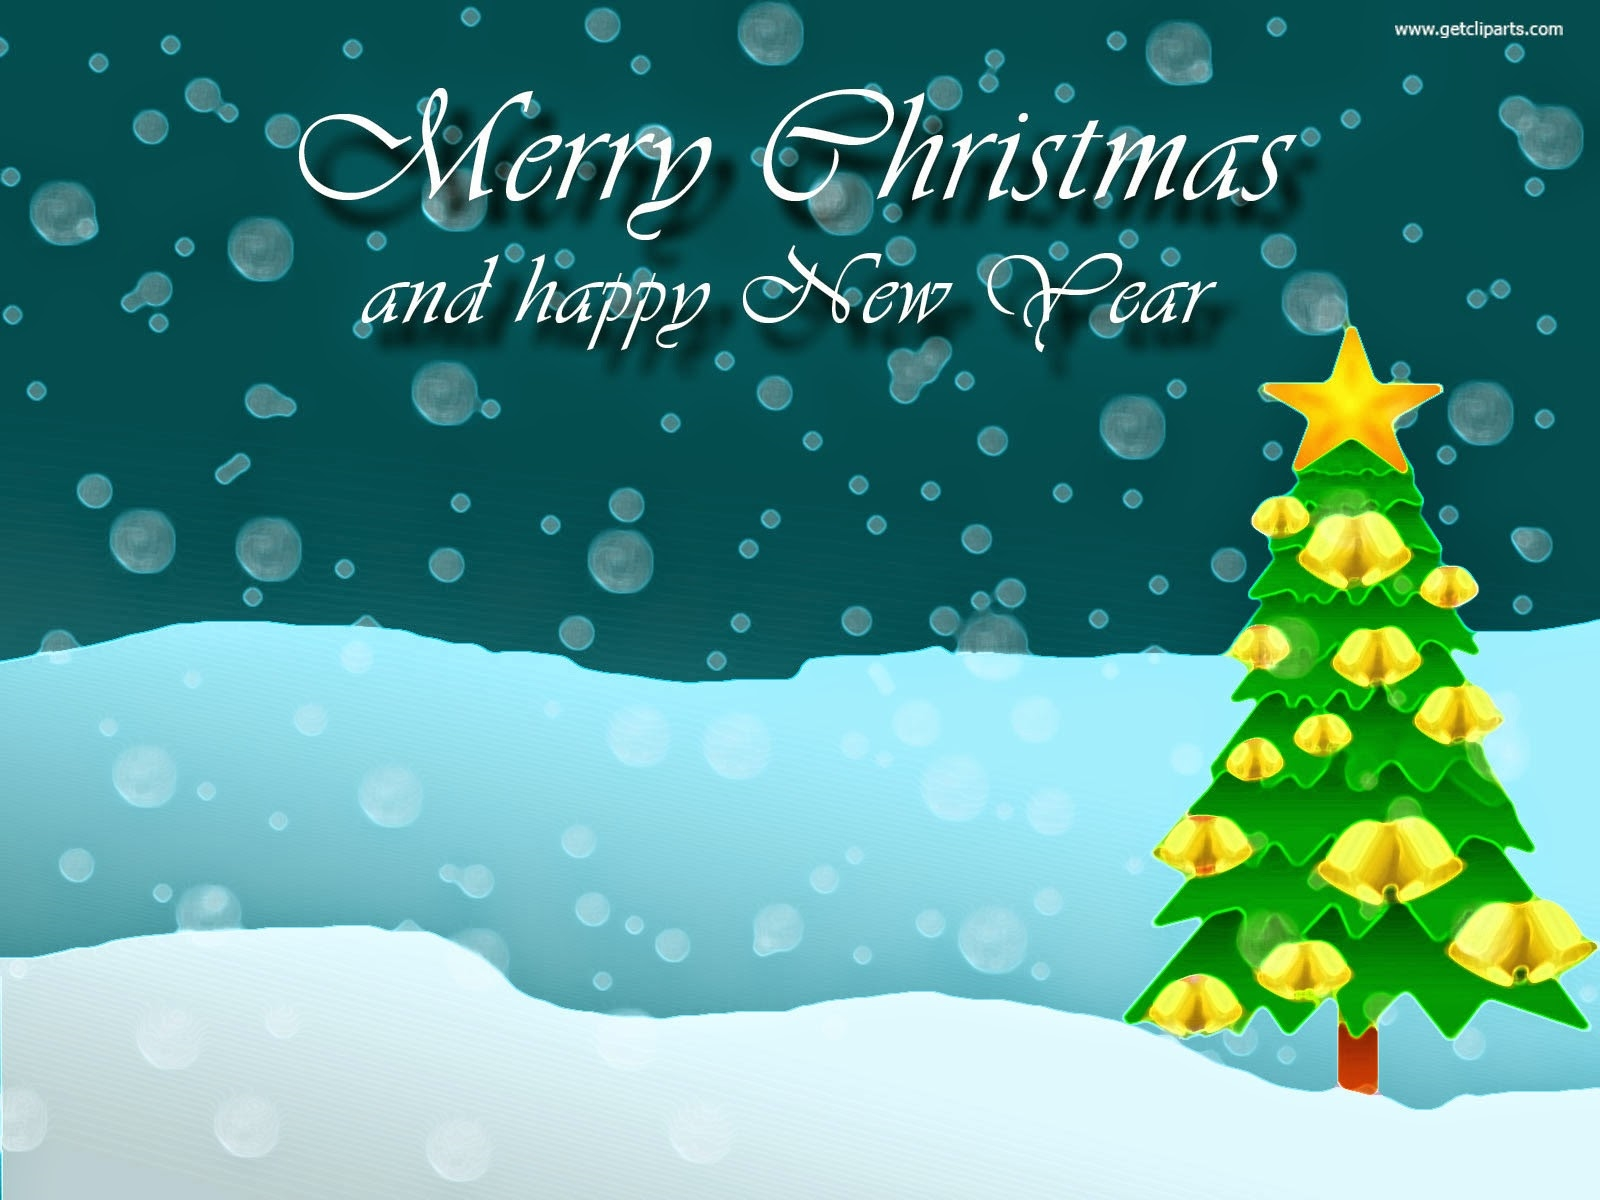 merry christmas happy new year free background - Merry Christmas And Happy New Year